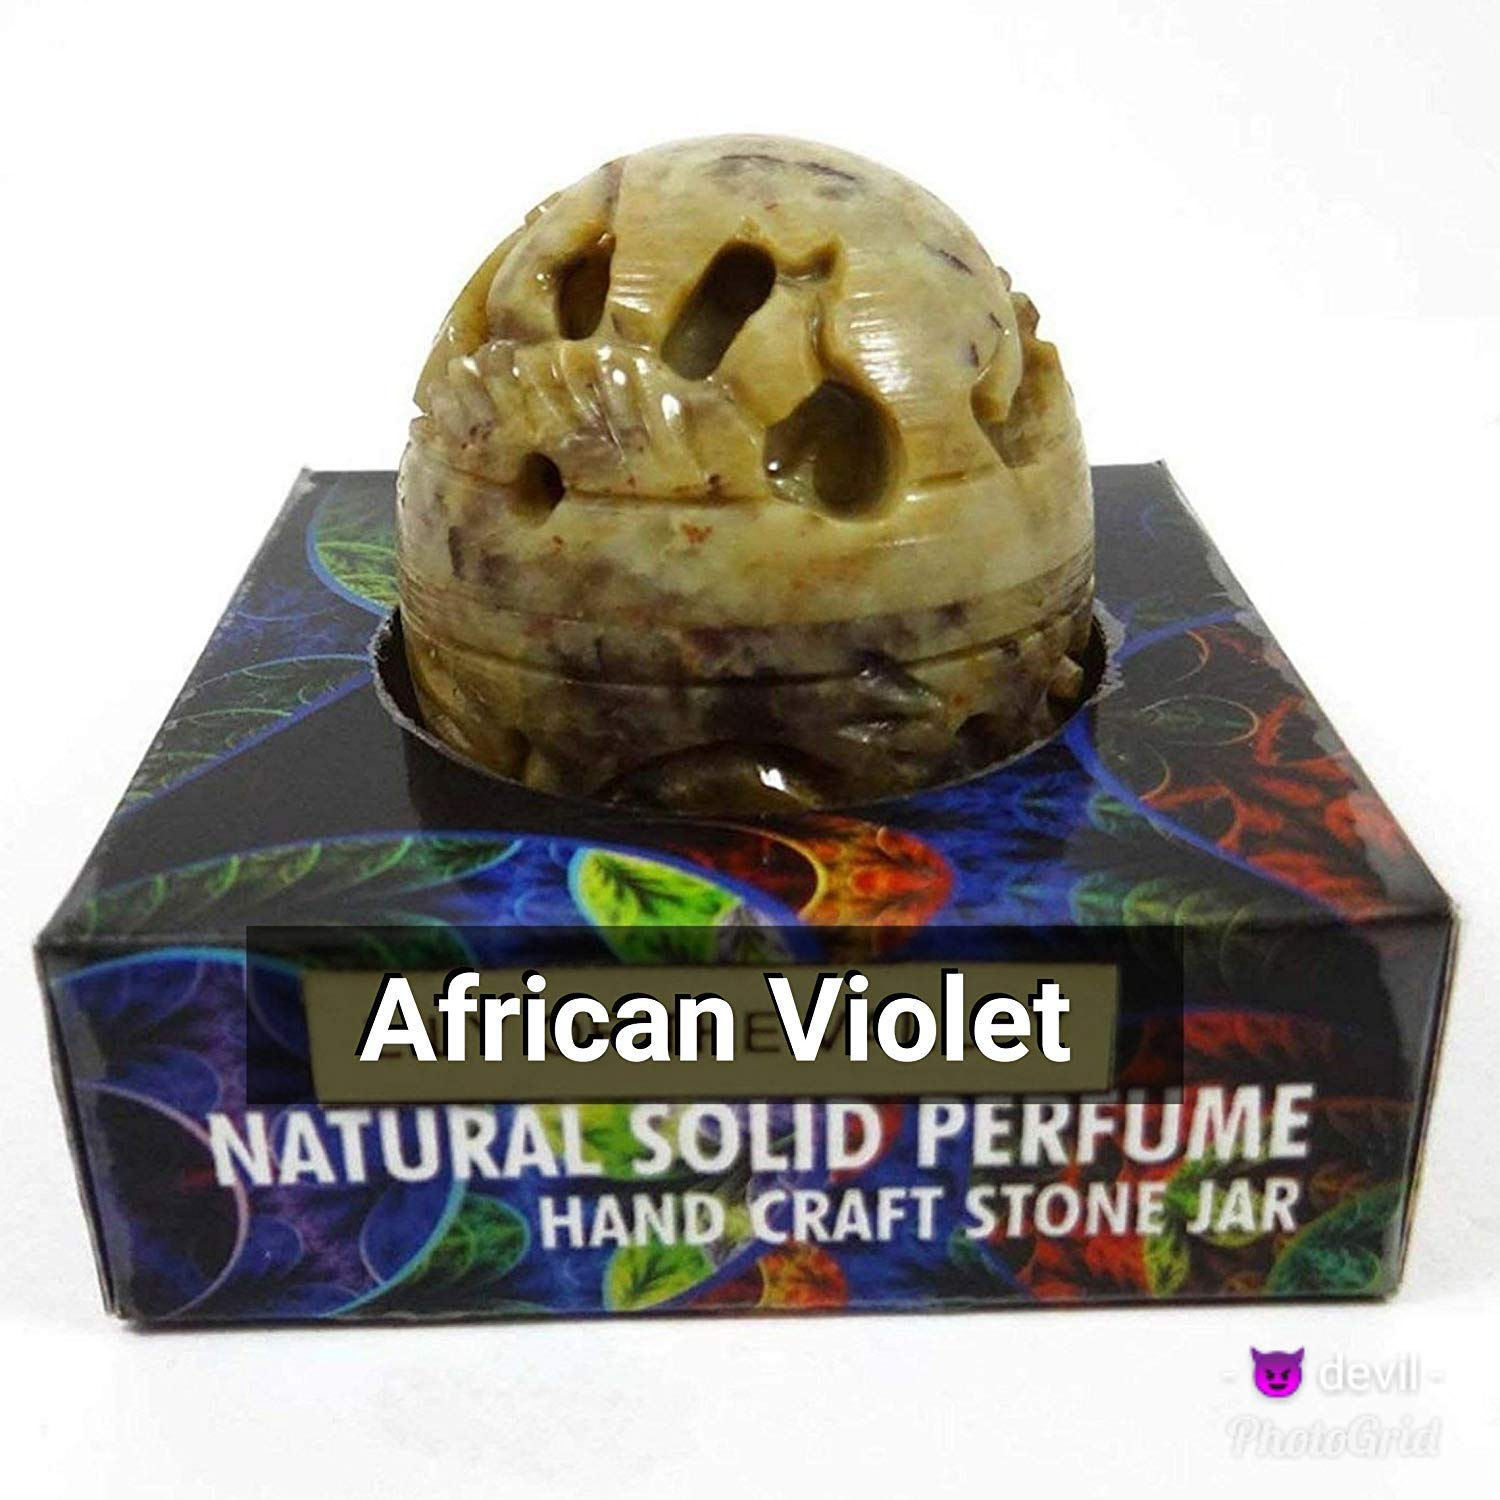 Natural African Violet Solid Perfume in Hand Crafted Stone Jar Made in India - 8g